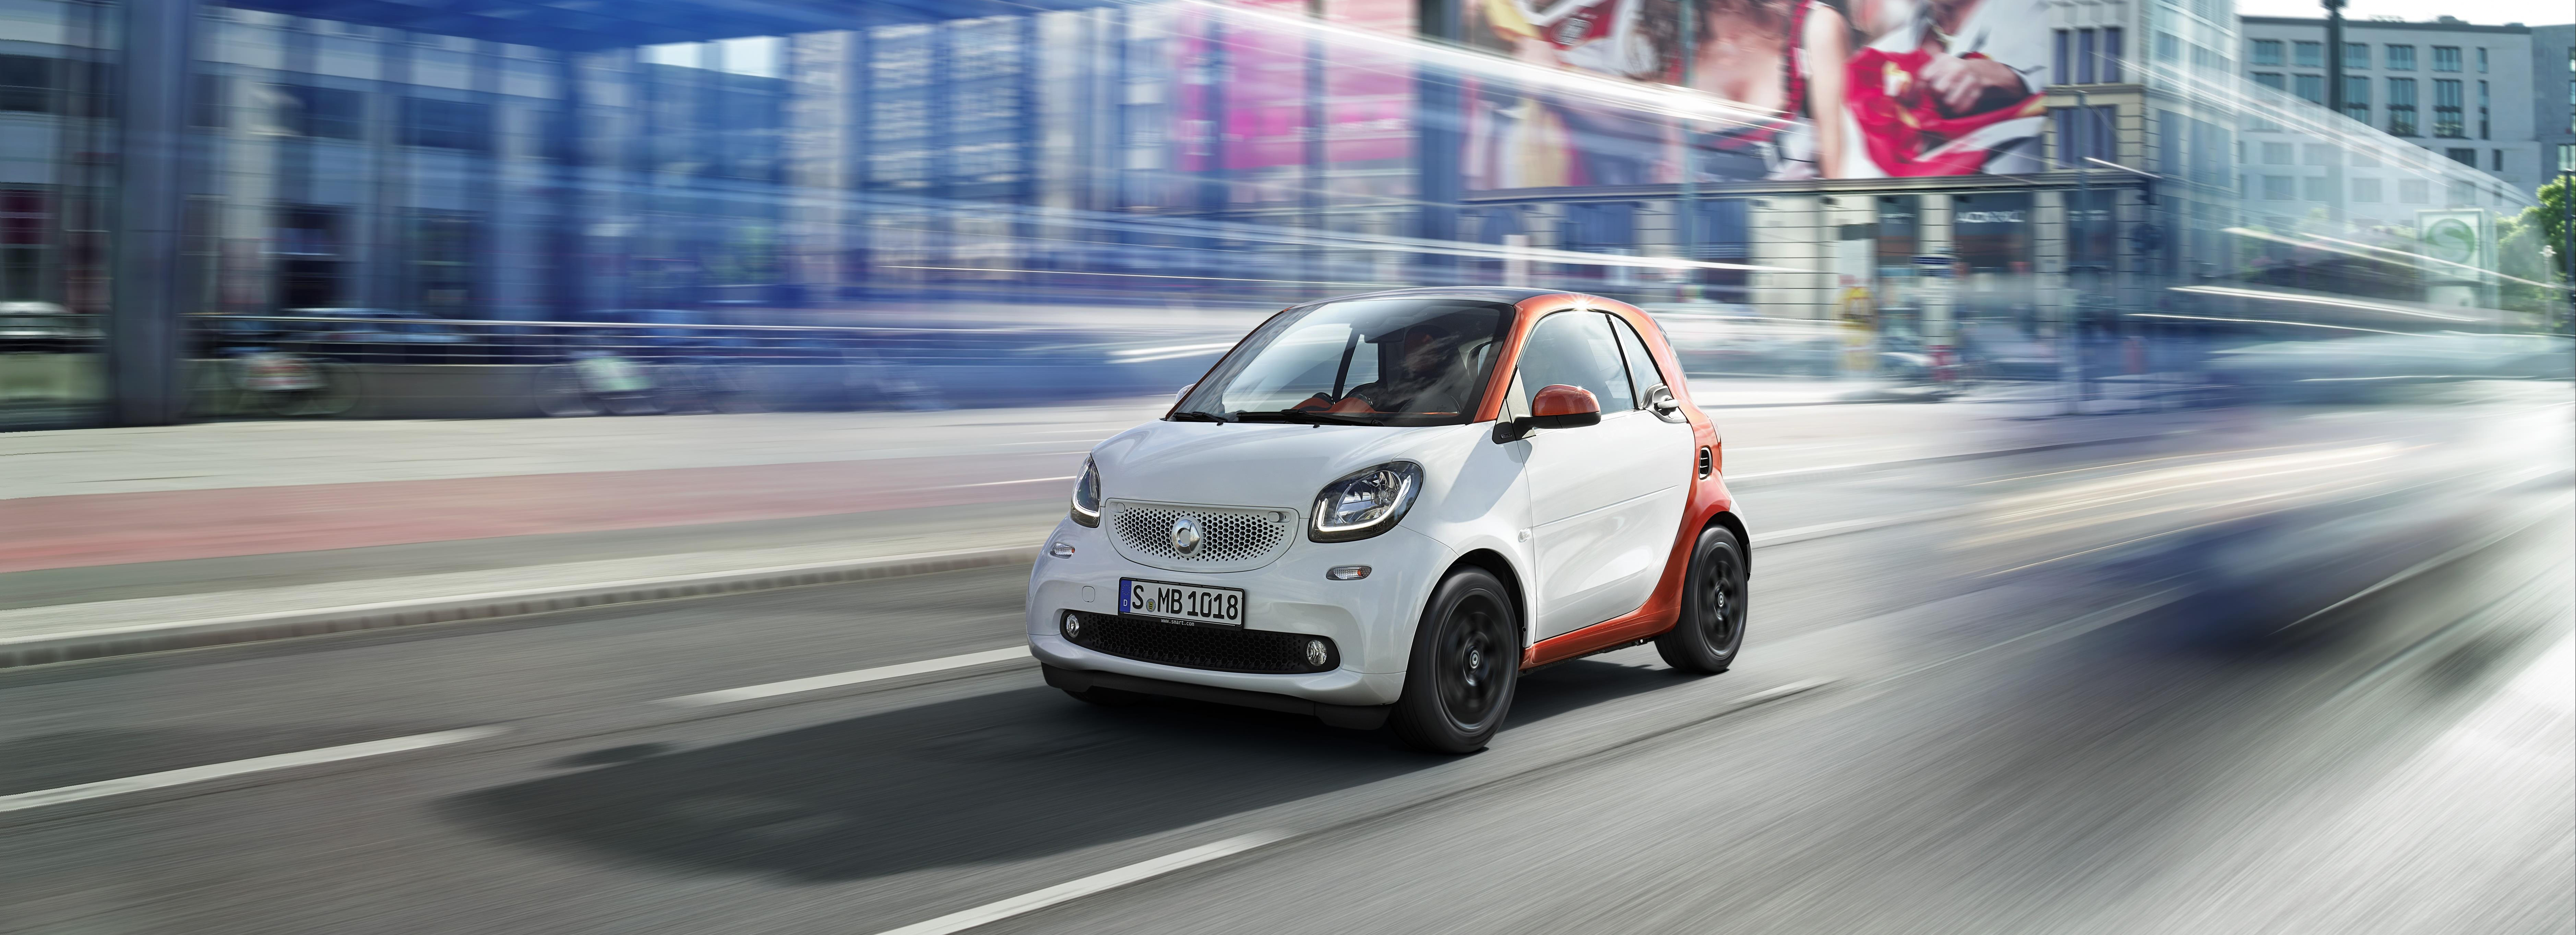 New Smart Fortwo For Sale 2019 20 Smart Fortwo Deals